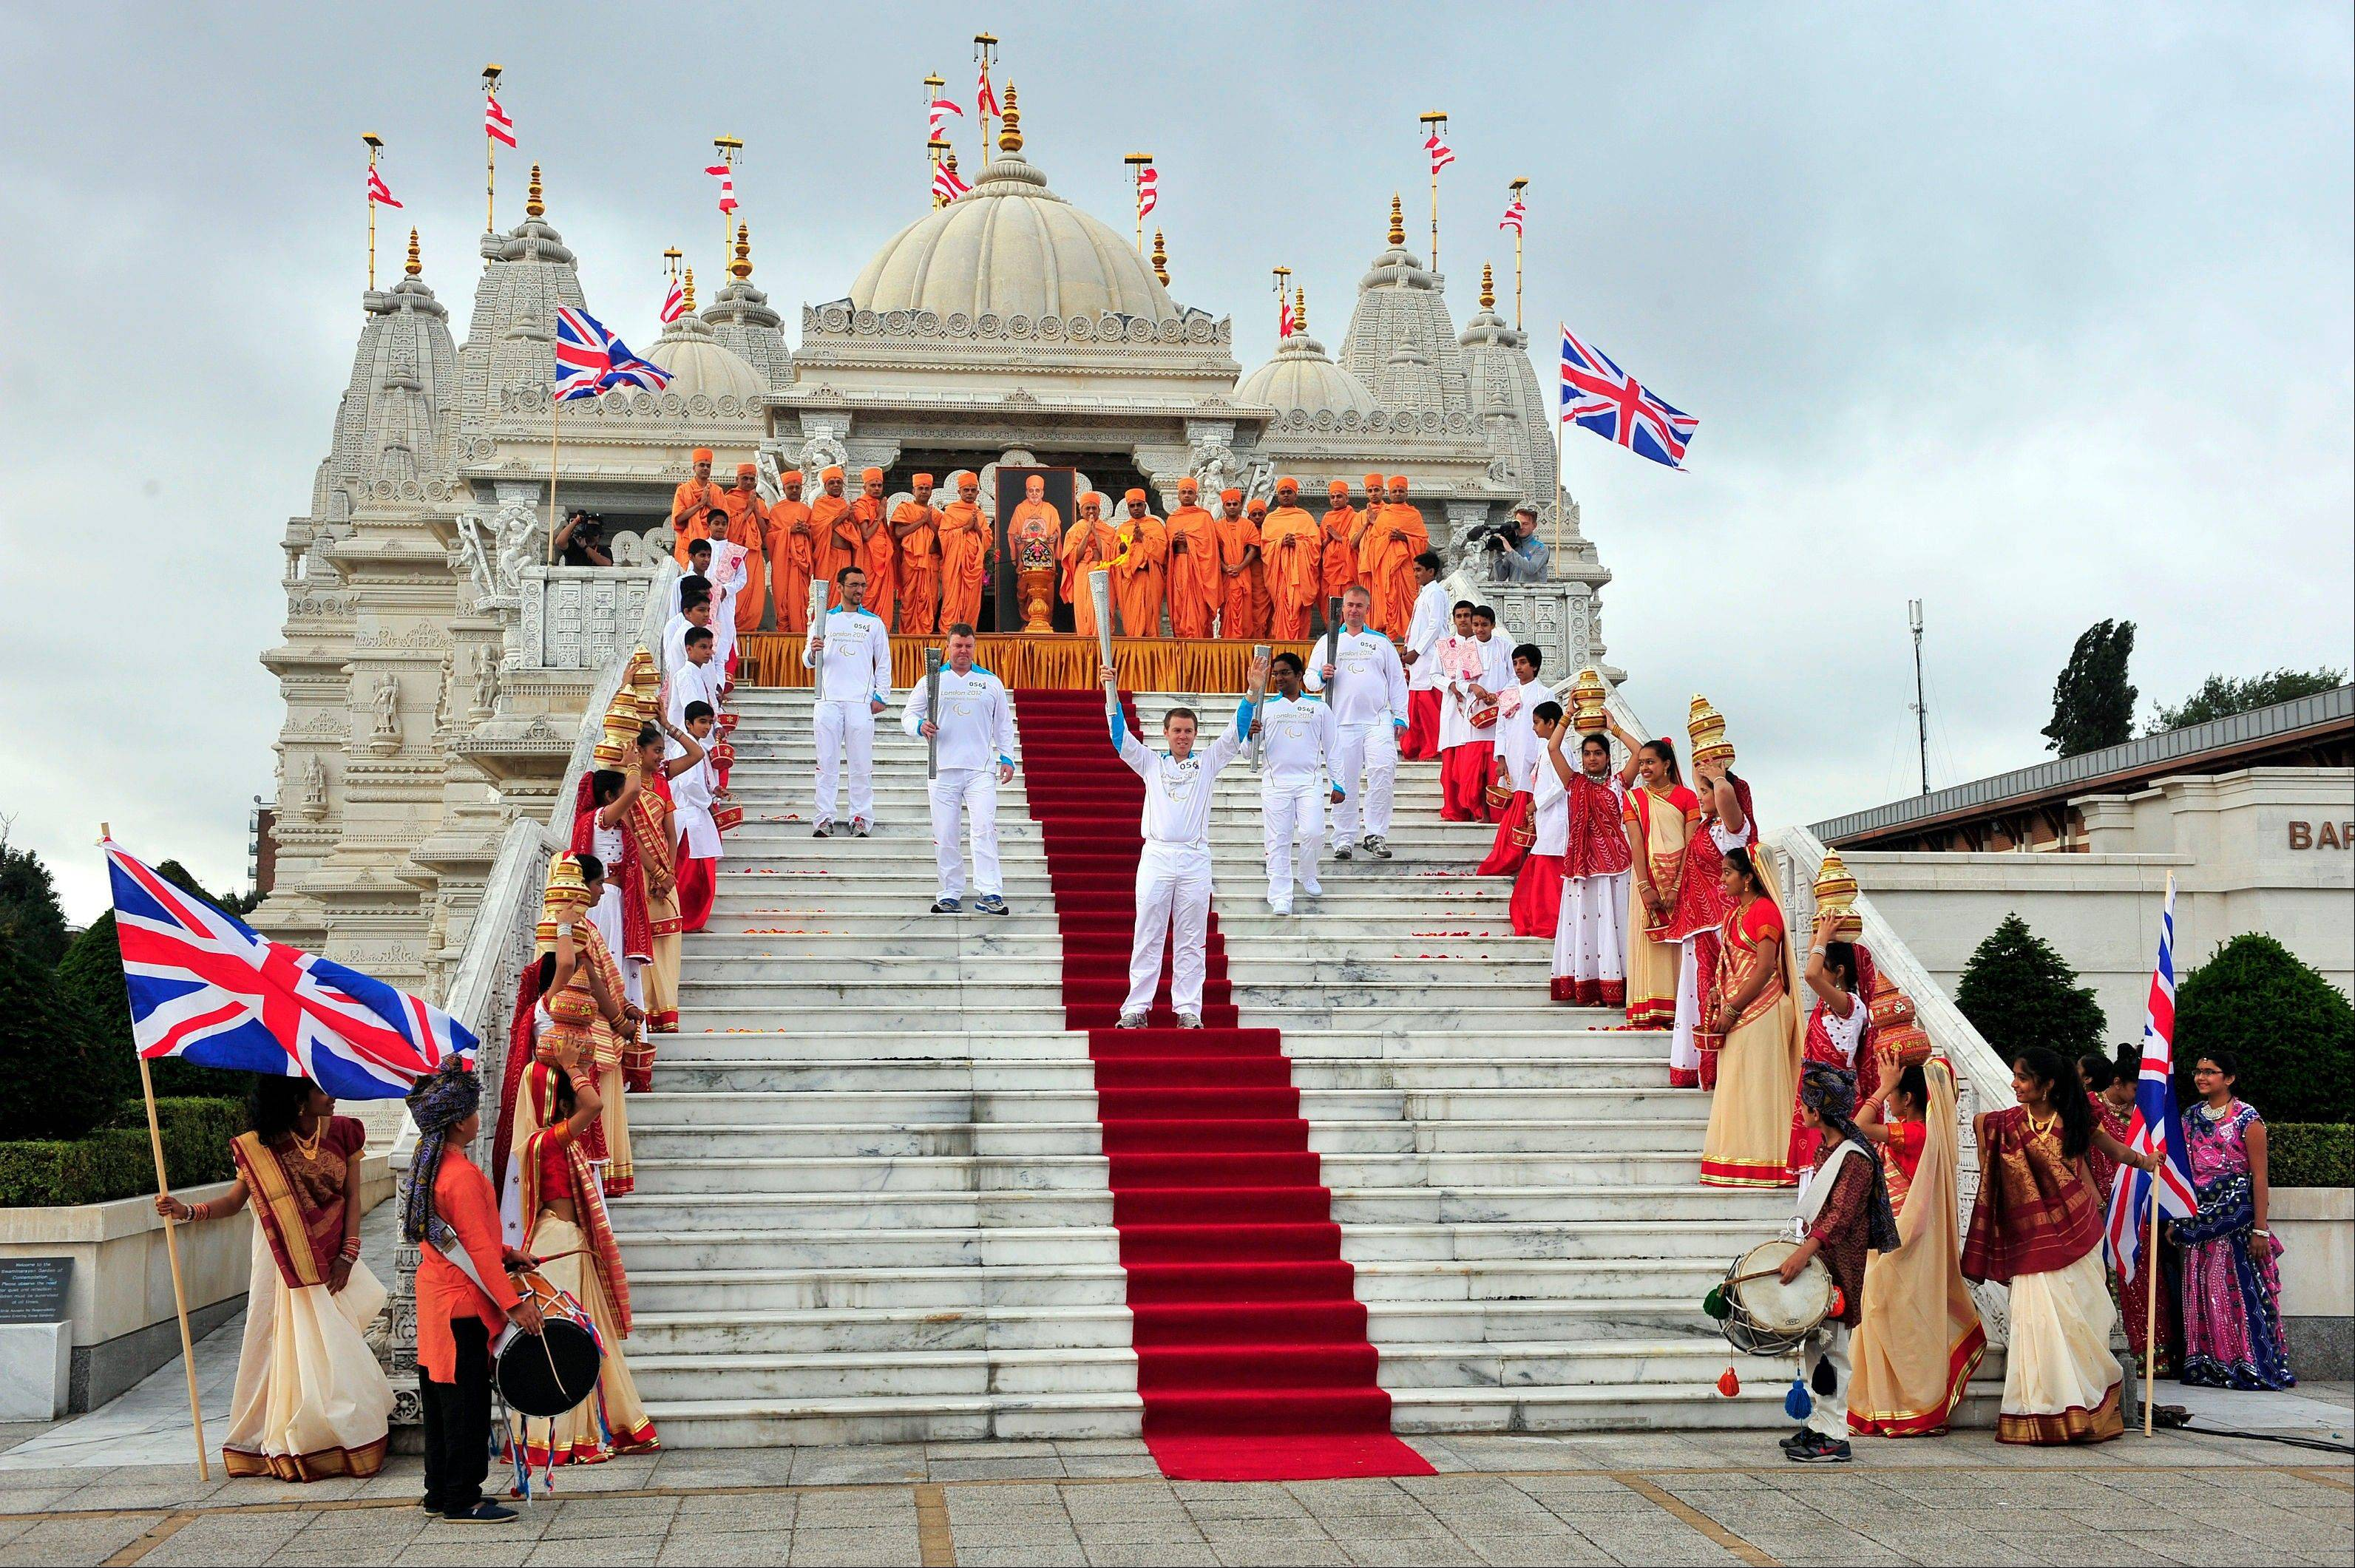 This photo made available by LOCOG shows Torchbearing team 056, (NOT left to right) including, Barrie Guy, Antony Eames, and others, no names available, outside the Shri Swaminarayan Mandir temple, in Brent, north London, as they carry the Paralympic Flame on the Torch Relay, Wednesday Aug. 29, 2012.